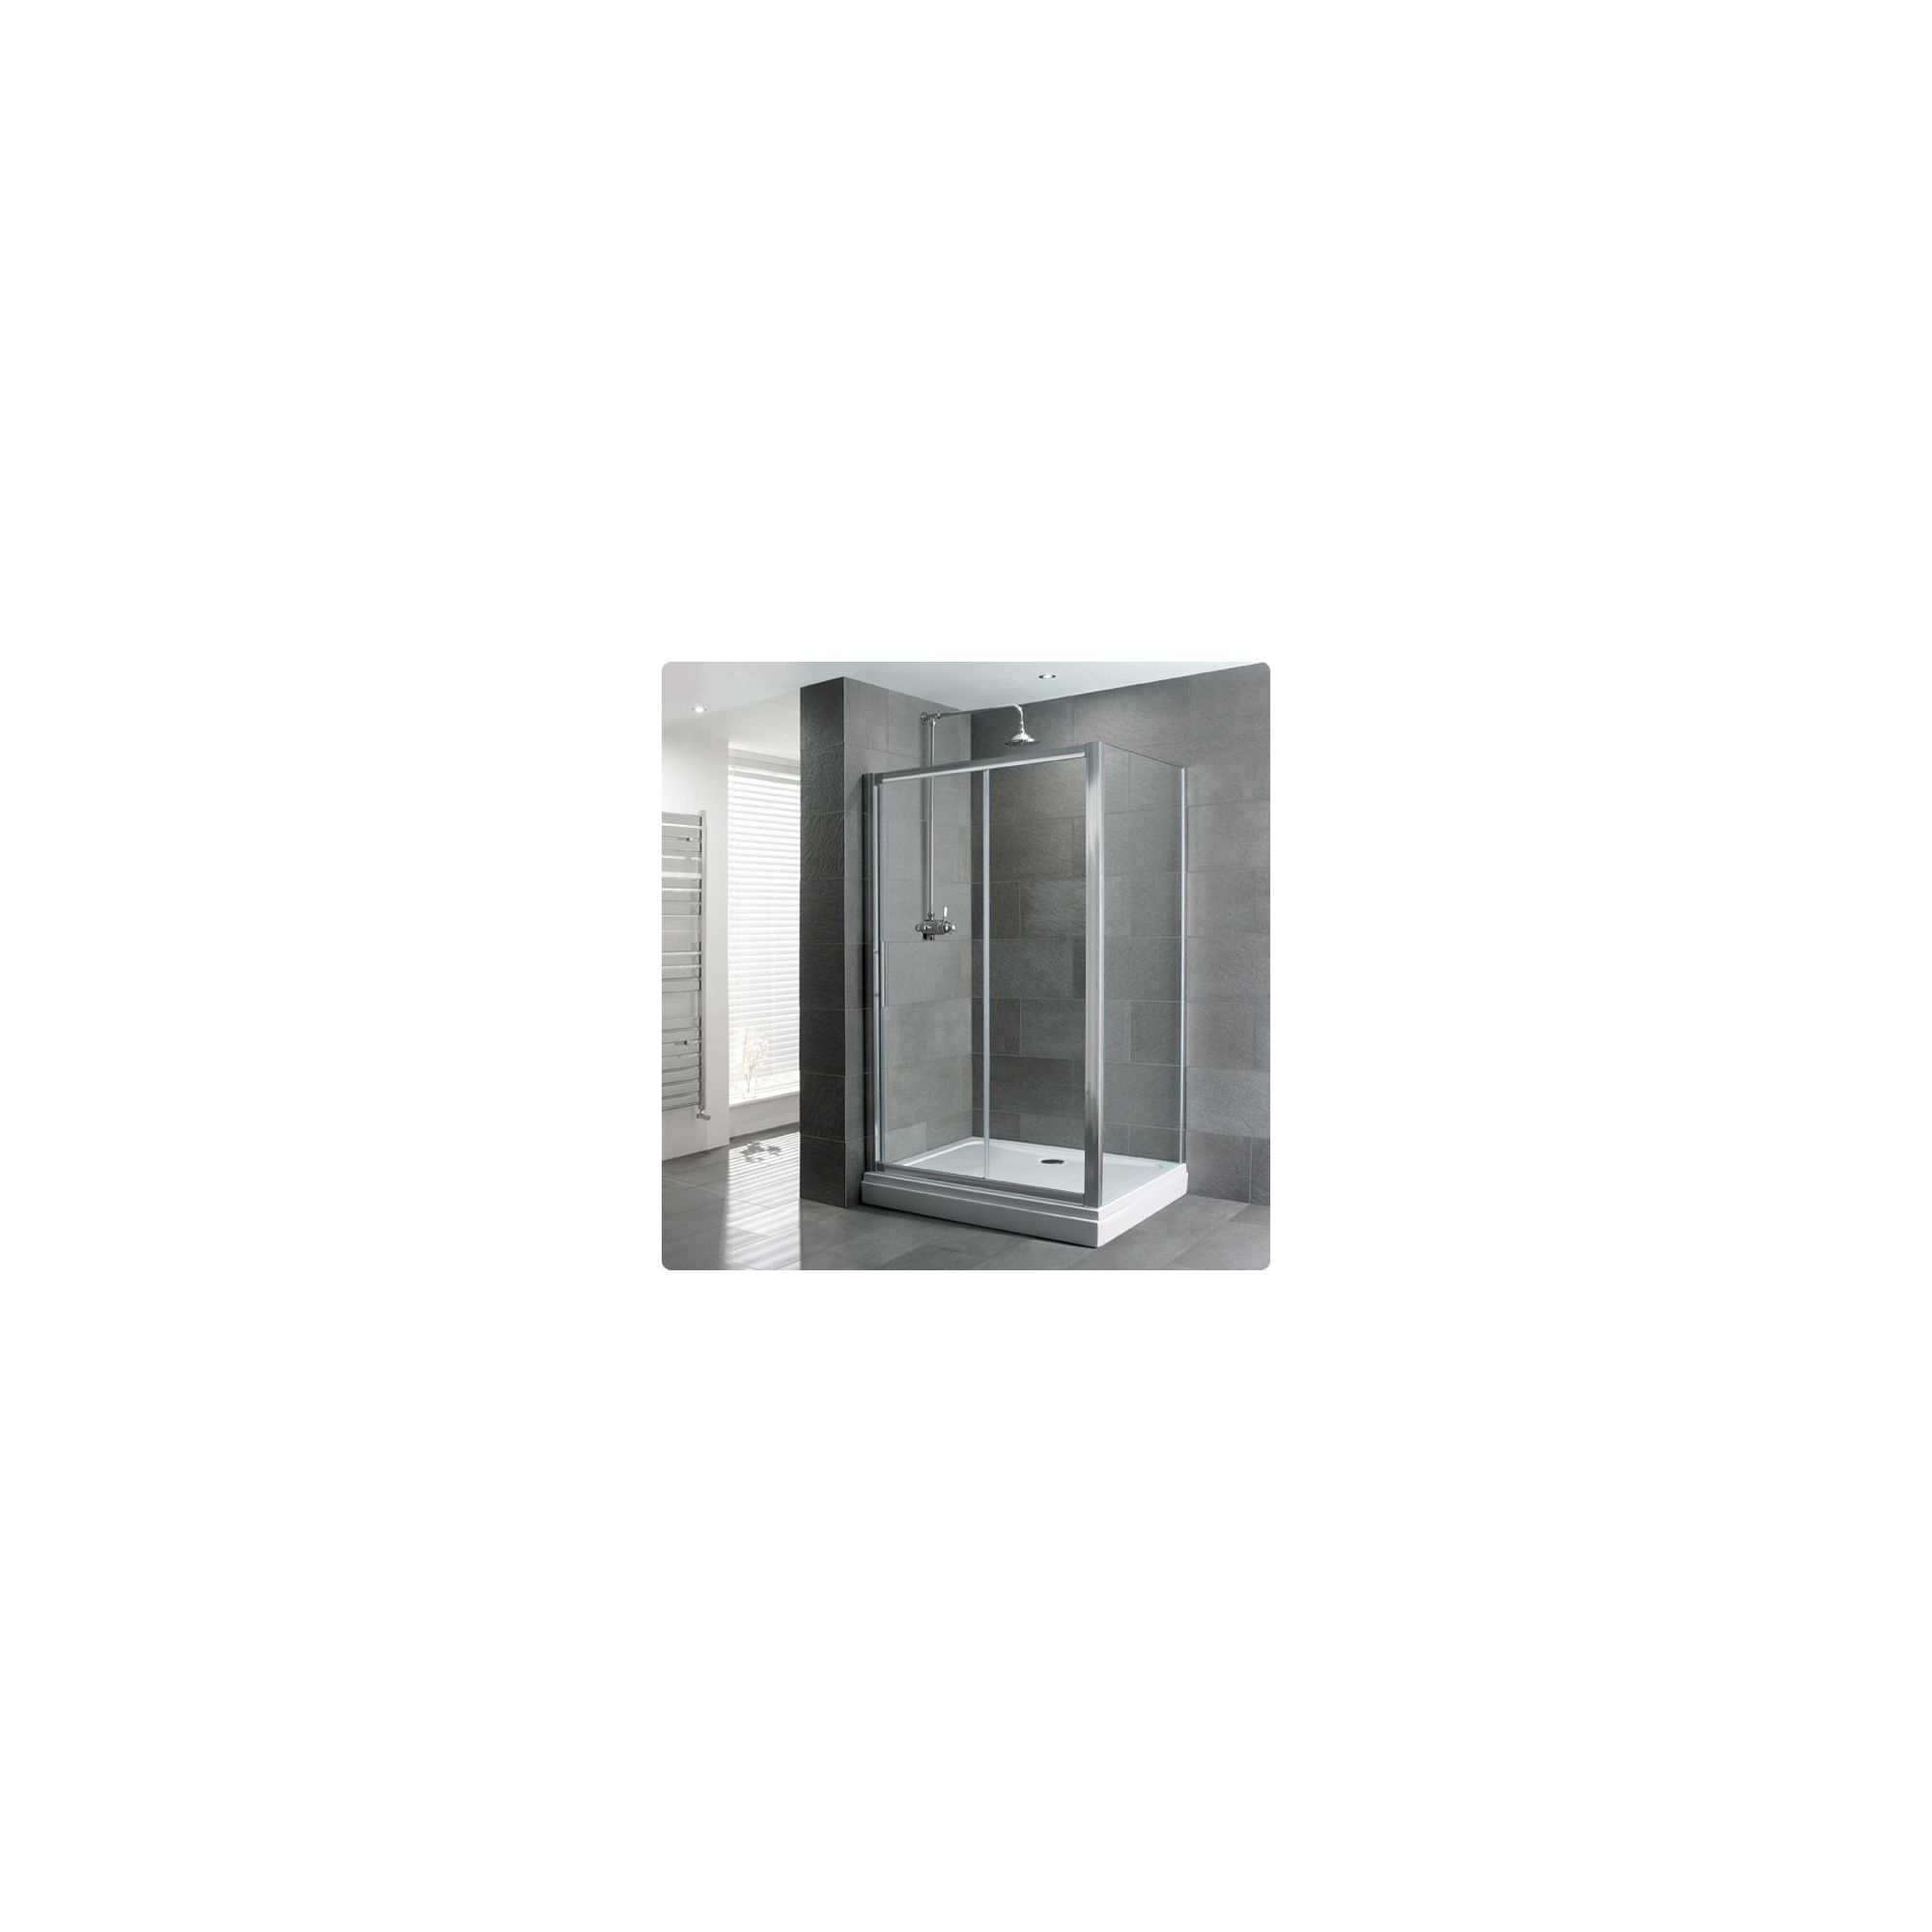 Duchy Select Silver Single Sliding Door Shower Enclosure, 1200mm x 900mm, Standard Tray, 6mm Glass at Tesco Direct